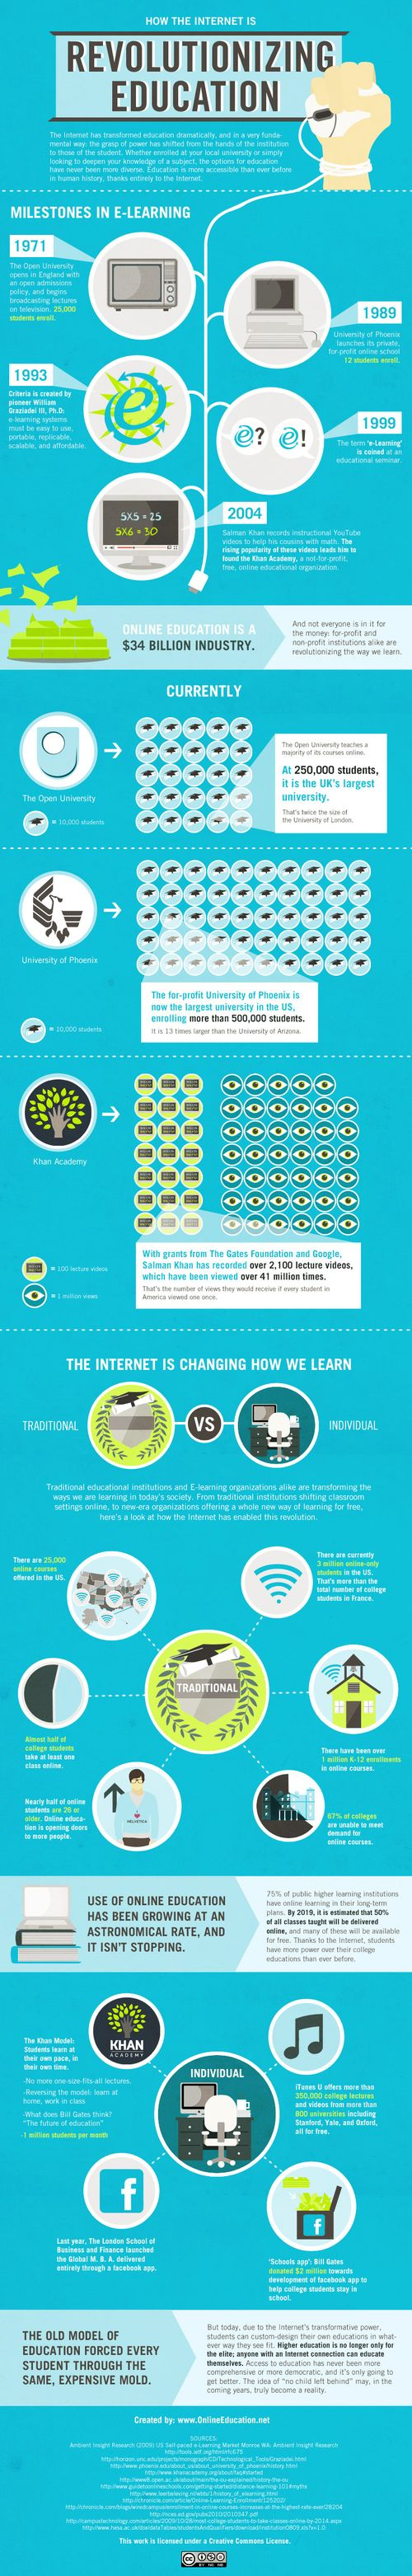 Internet-revolutionizing-education